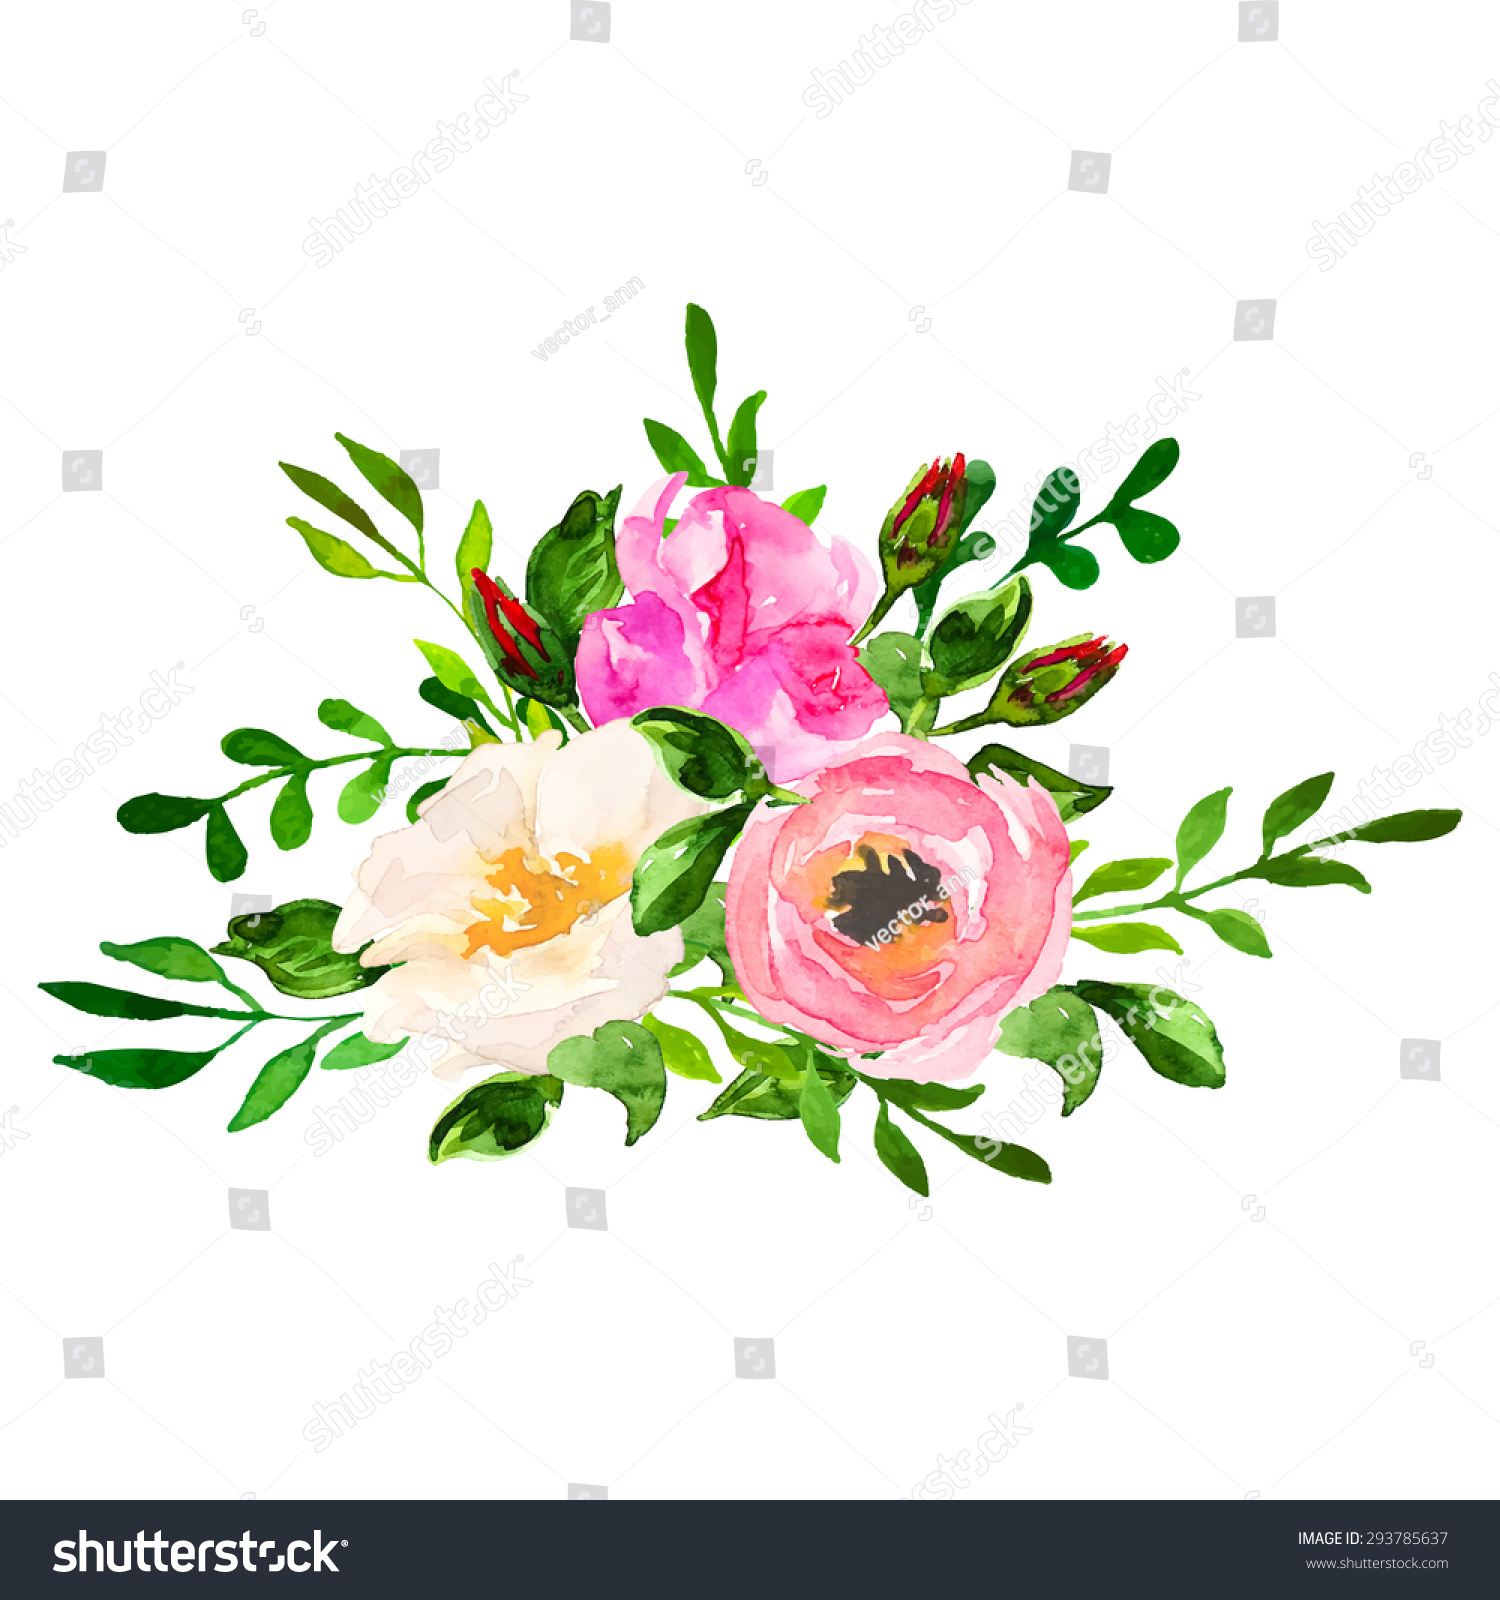 Beautiful floral hand drawn watercolor bouquet stok vektr 293785637 beautiful floral hand drawn watercolor bouquet bunch of flowers arrangement with pink roses izmirmasajfo